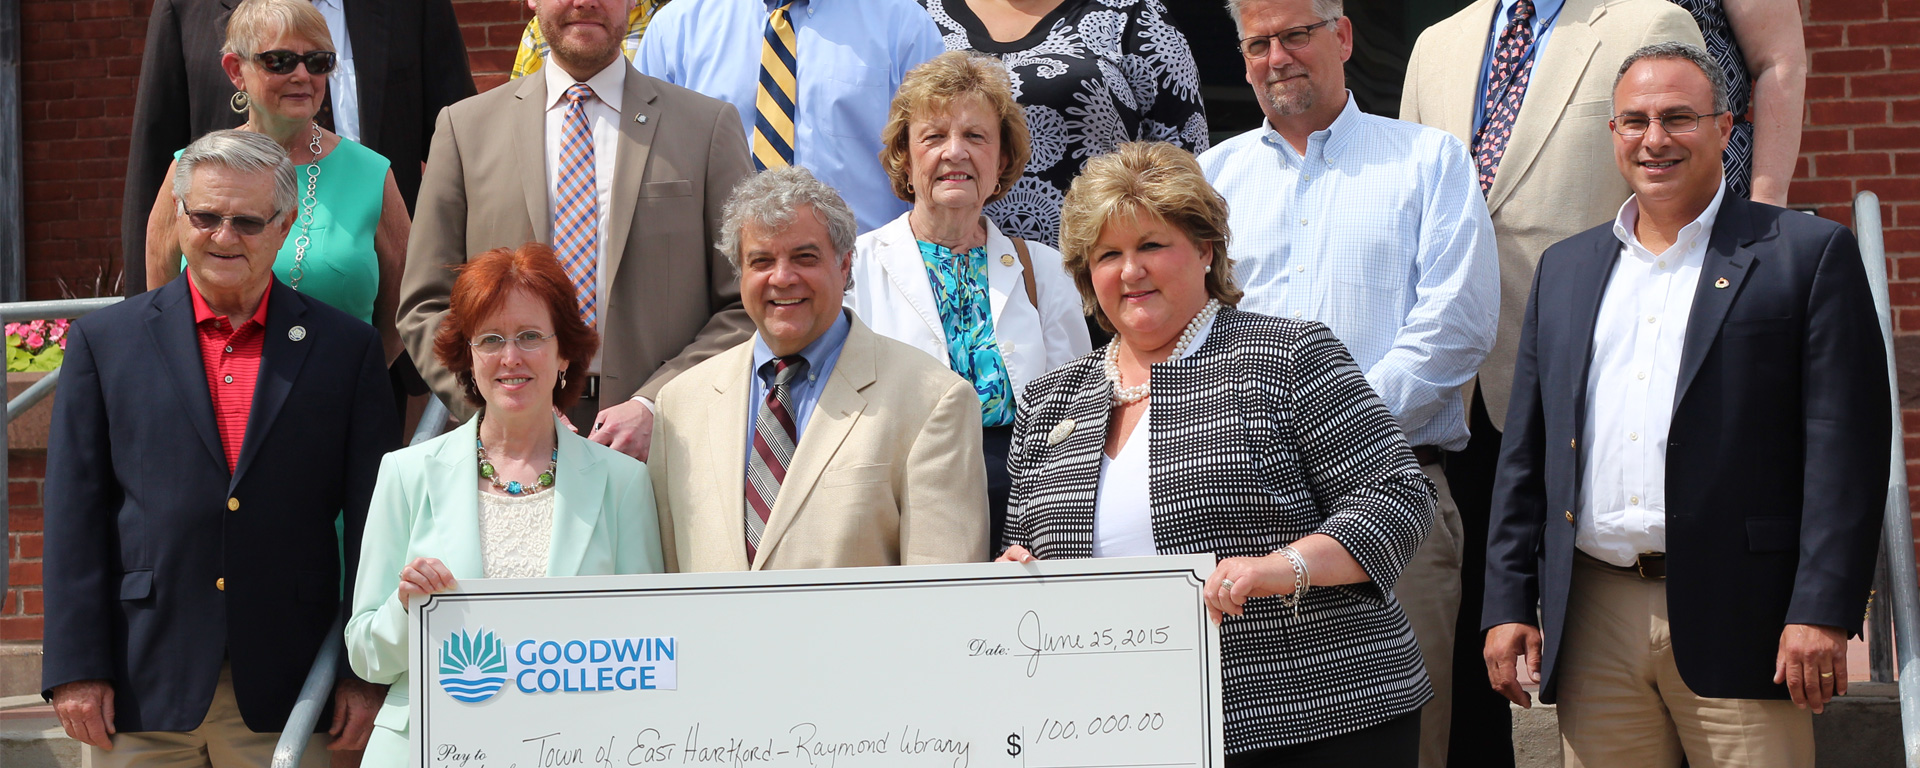 Goodwin College Donates to East Hartford Library